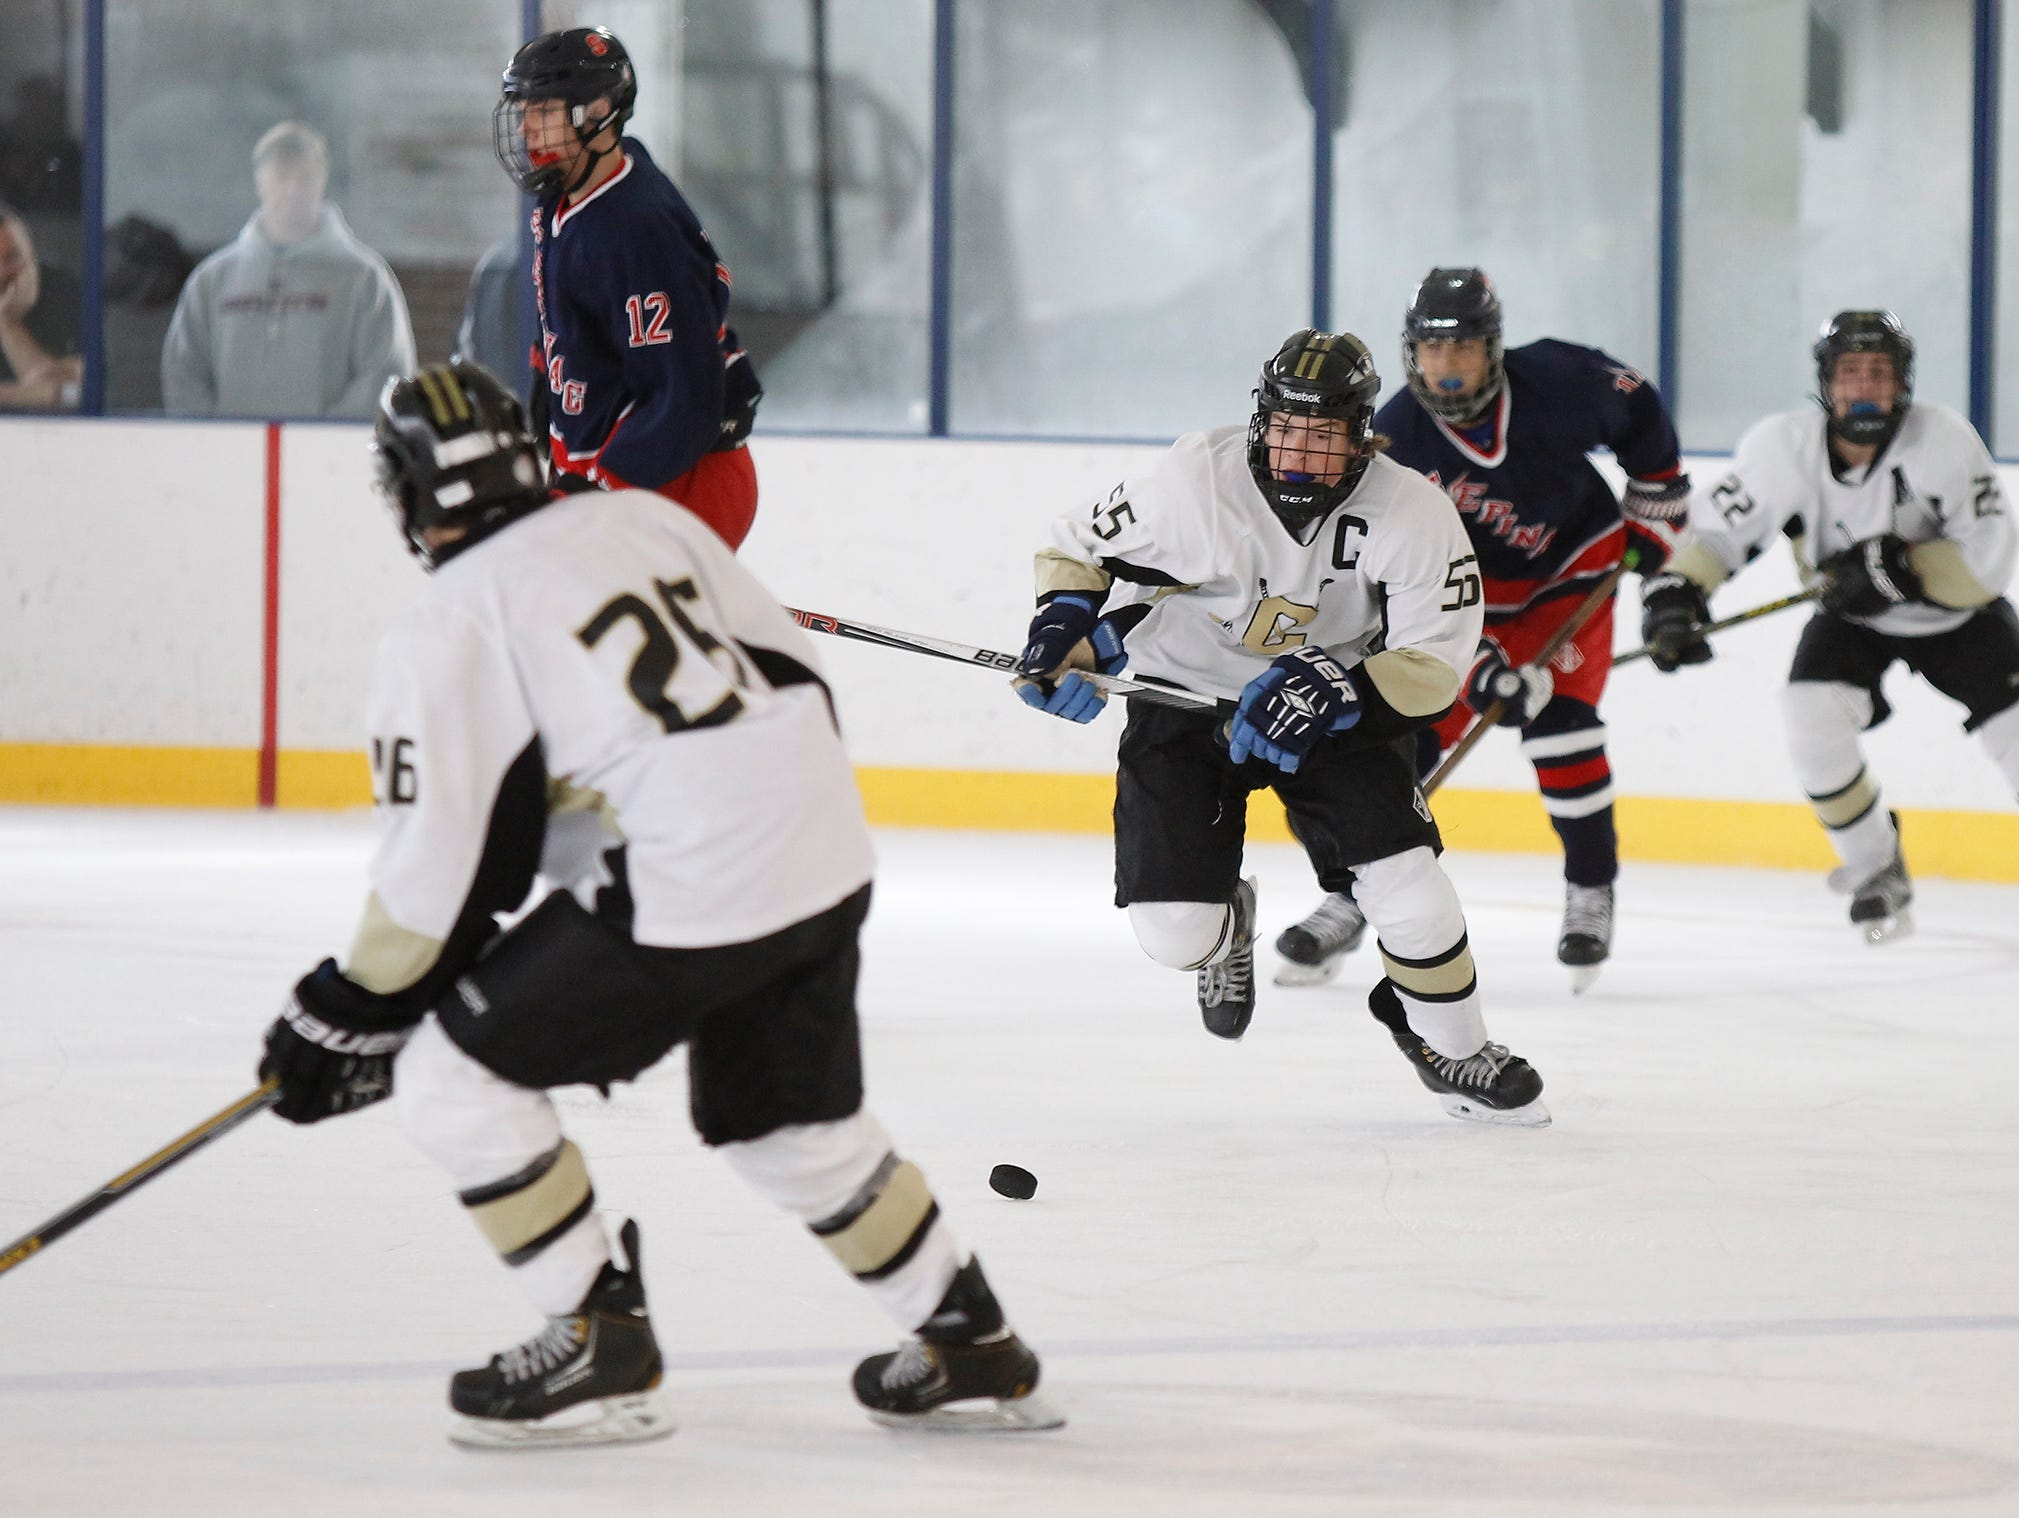 Clarkstown's Luke Myers (55) chases a loose puck during a varsity ice hockey game against Stepinac at the 2015 Guy Matthews Thanksgiving Invitational Hockey tournament at Ebersole Ice Rink in White Plains on Friday, Nov. 27, 2015.